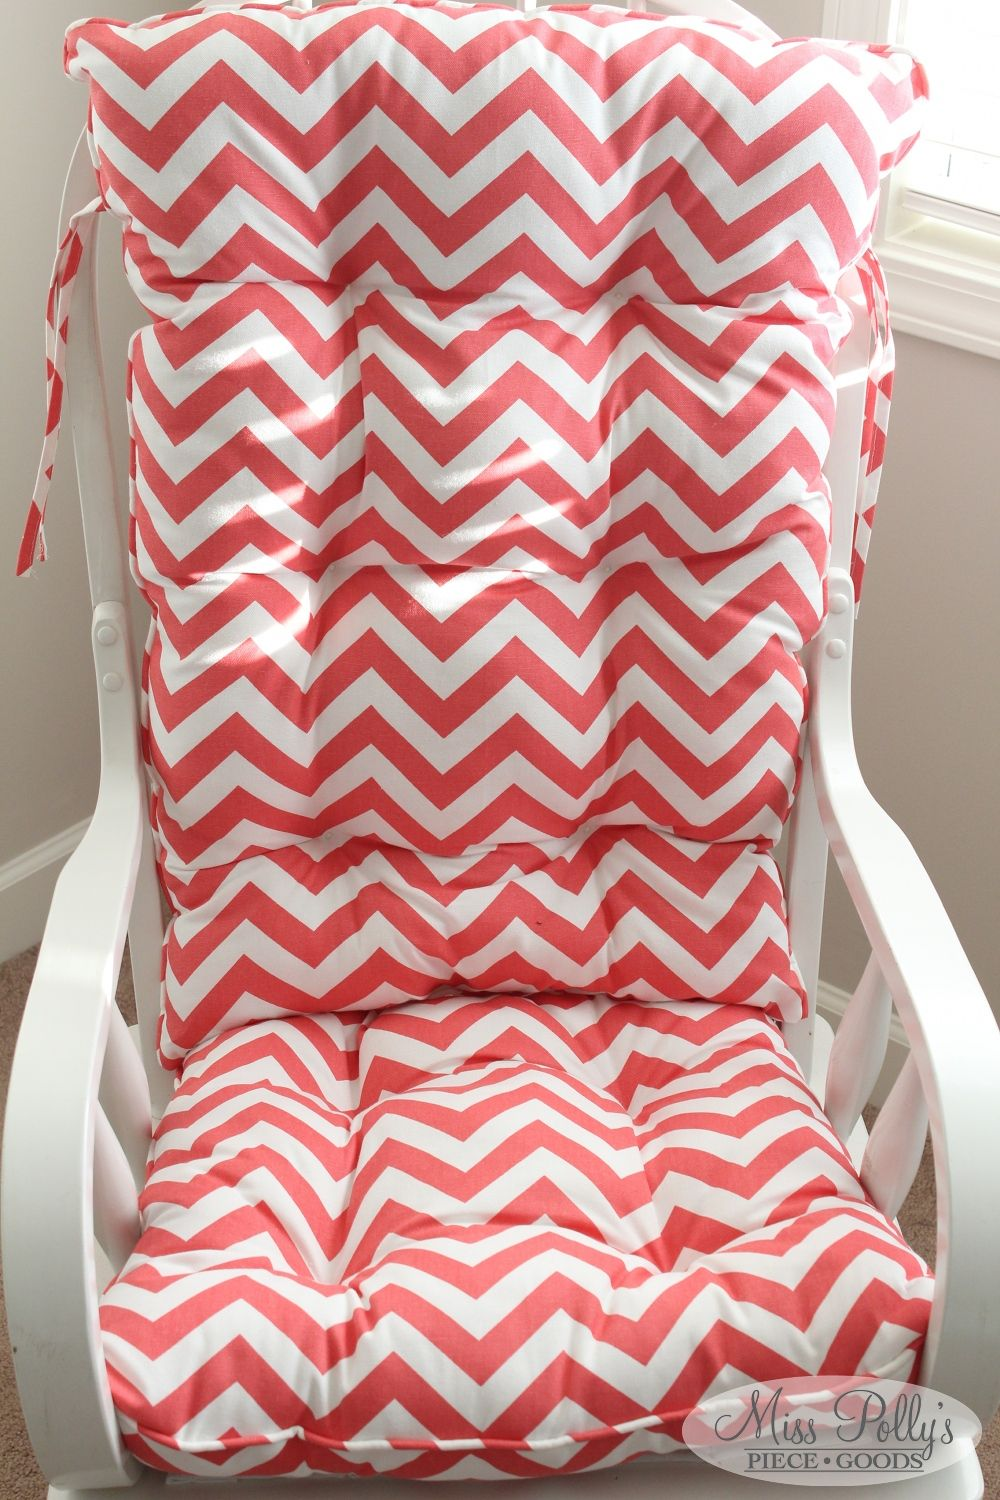 Coral Chevron Cushions Custom made to fit with a squaredtop by